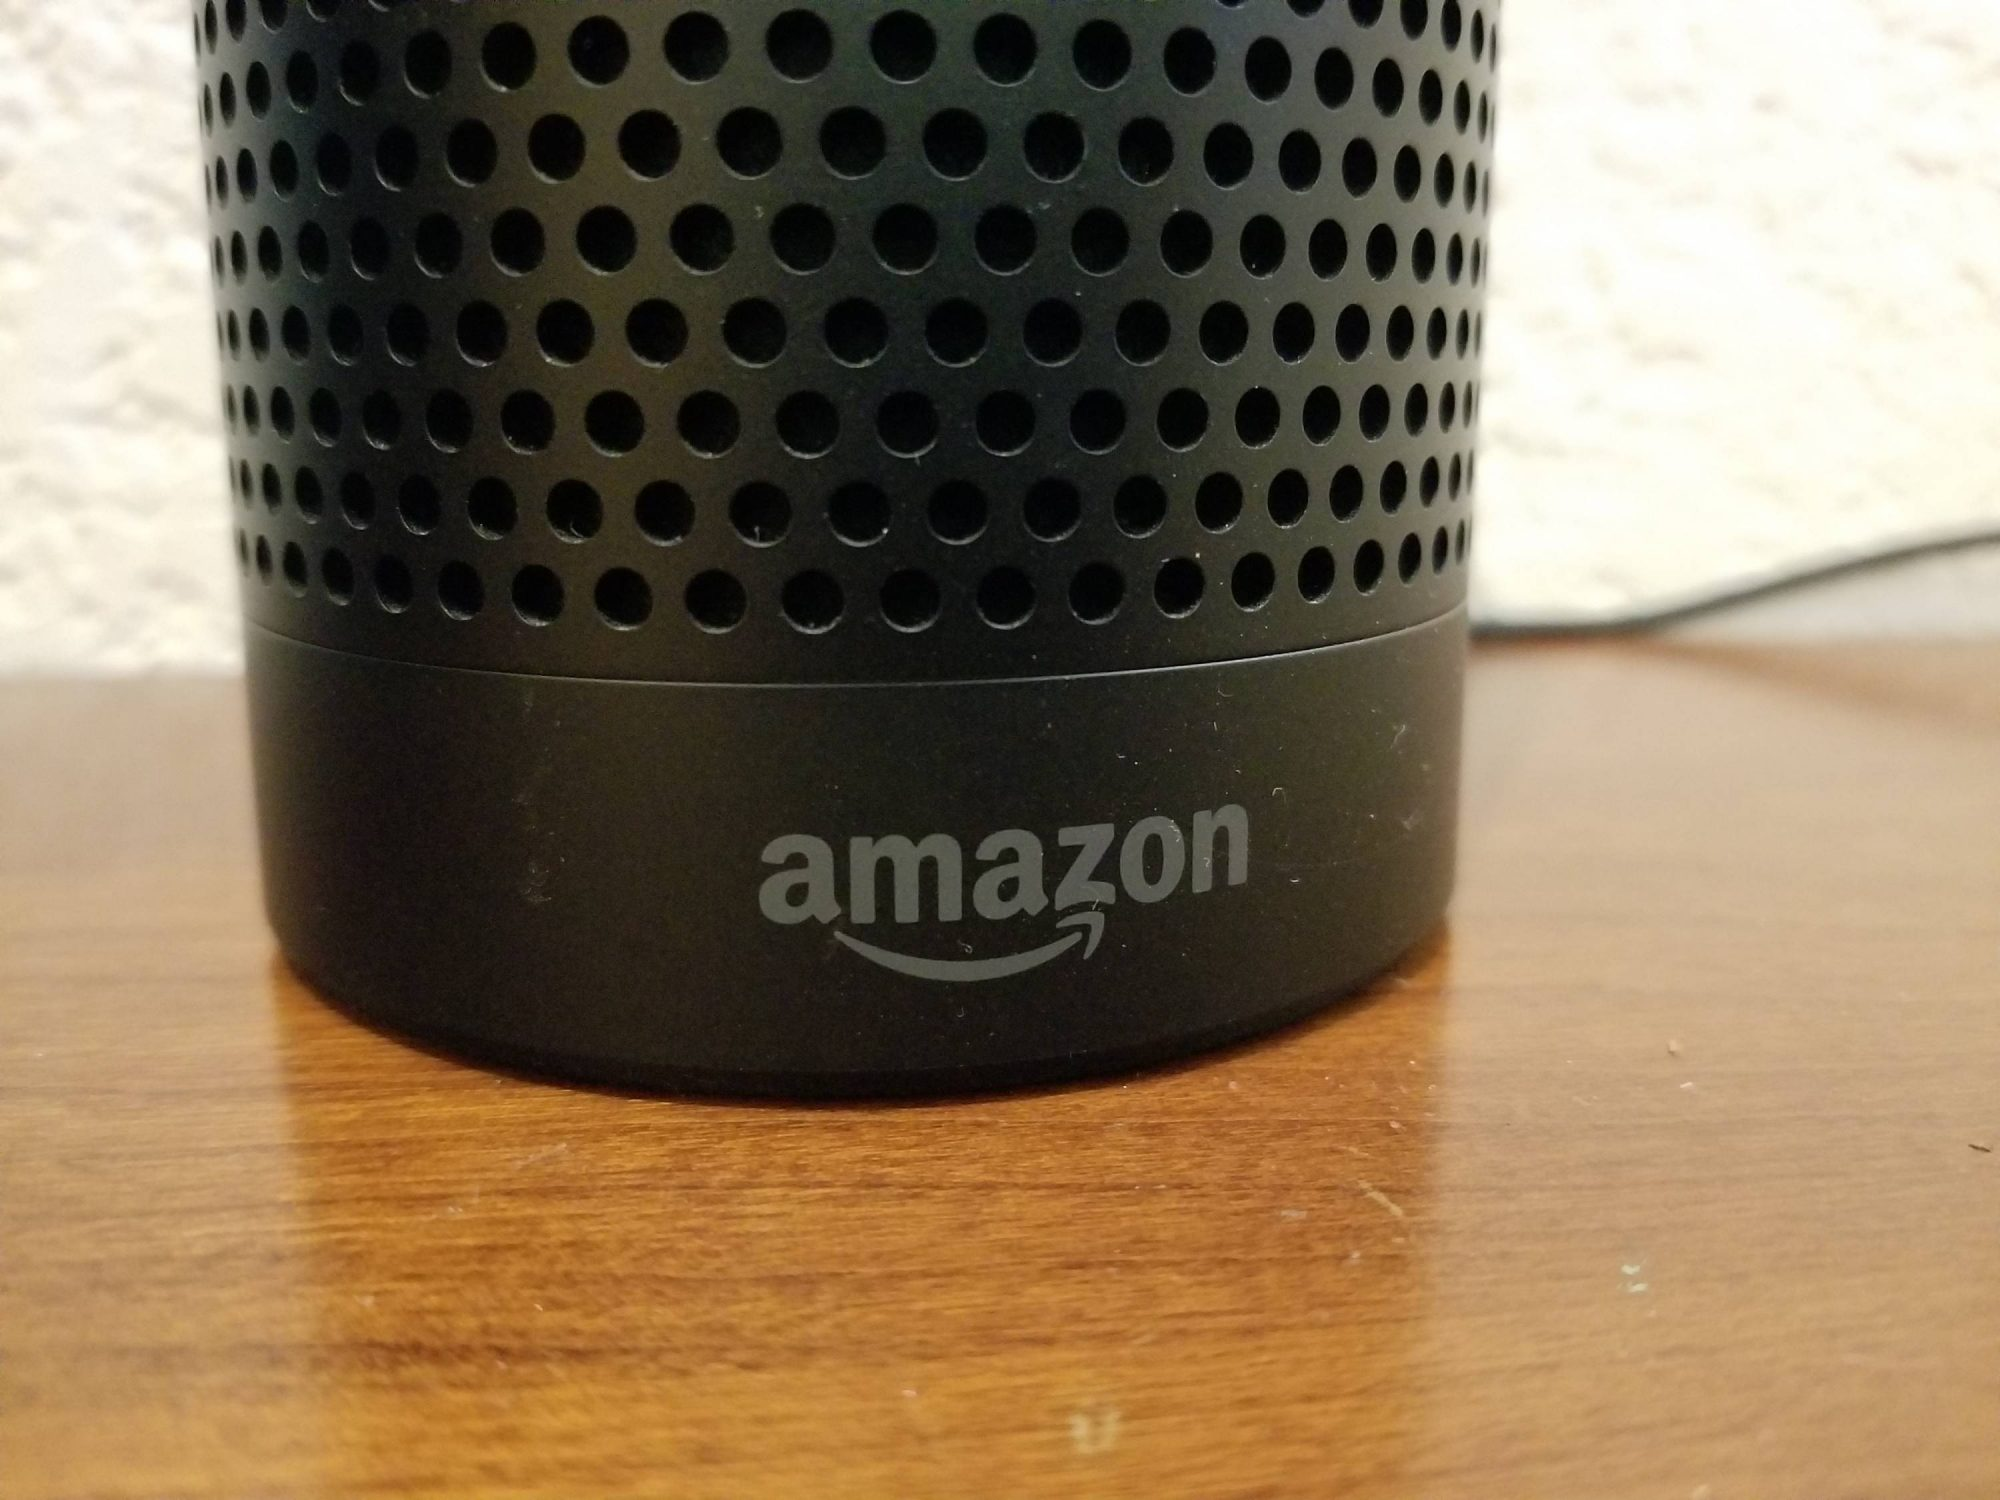 Amazon Alexa Fund Makes Its First Investment in Restaurant Tech With SevenRooms